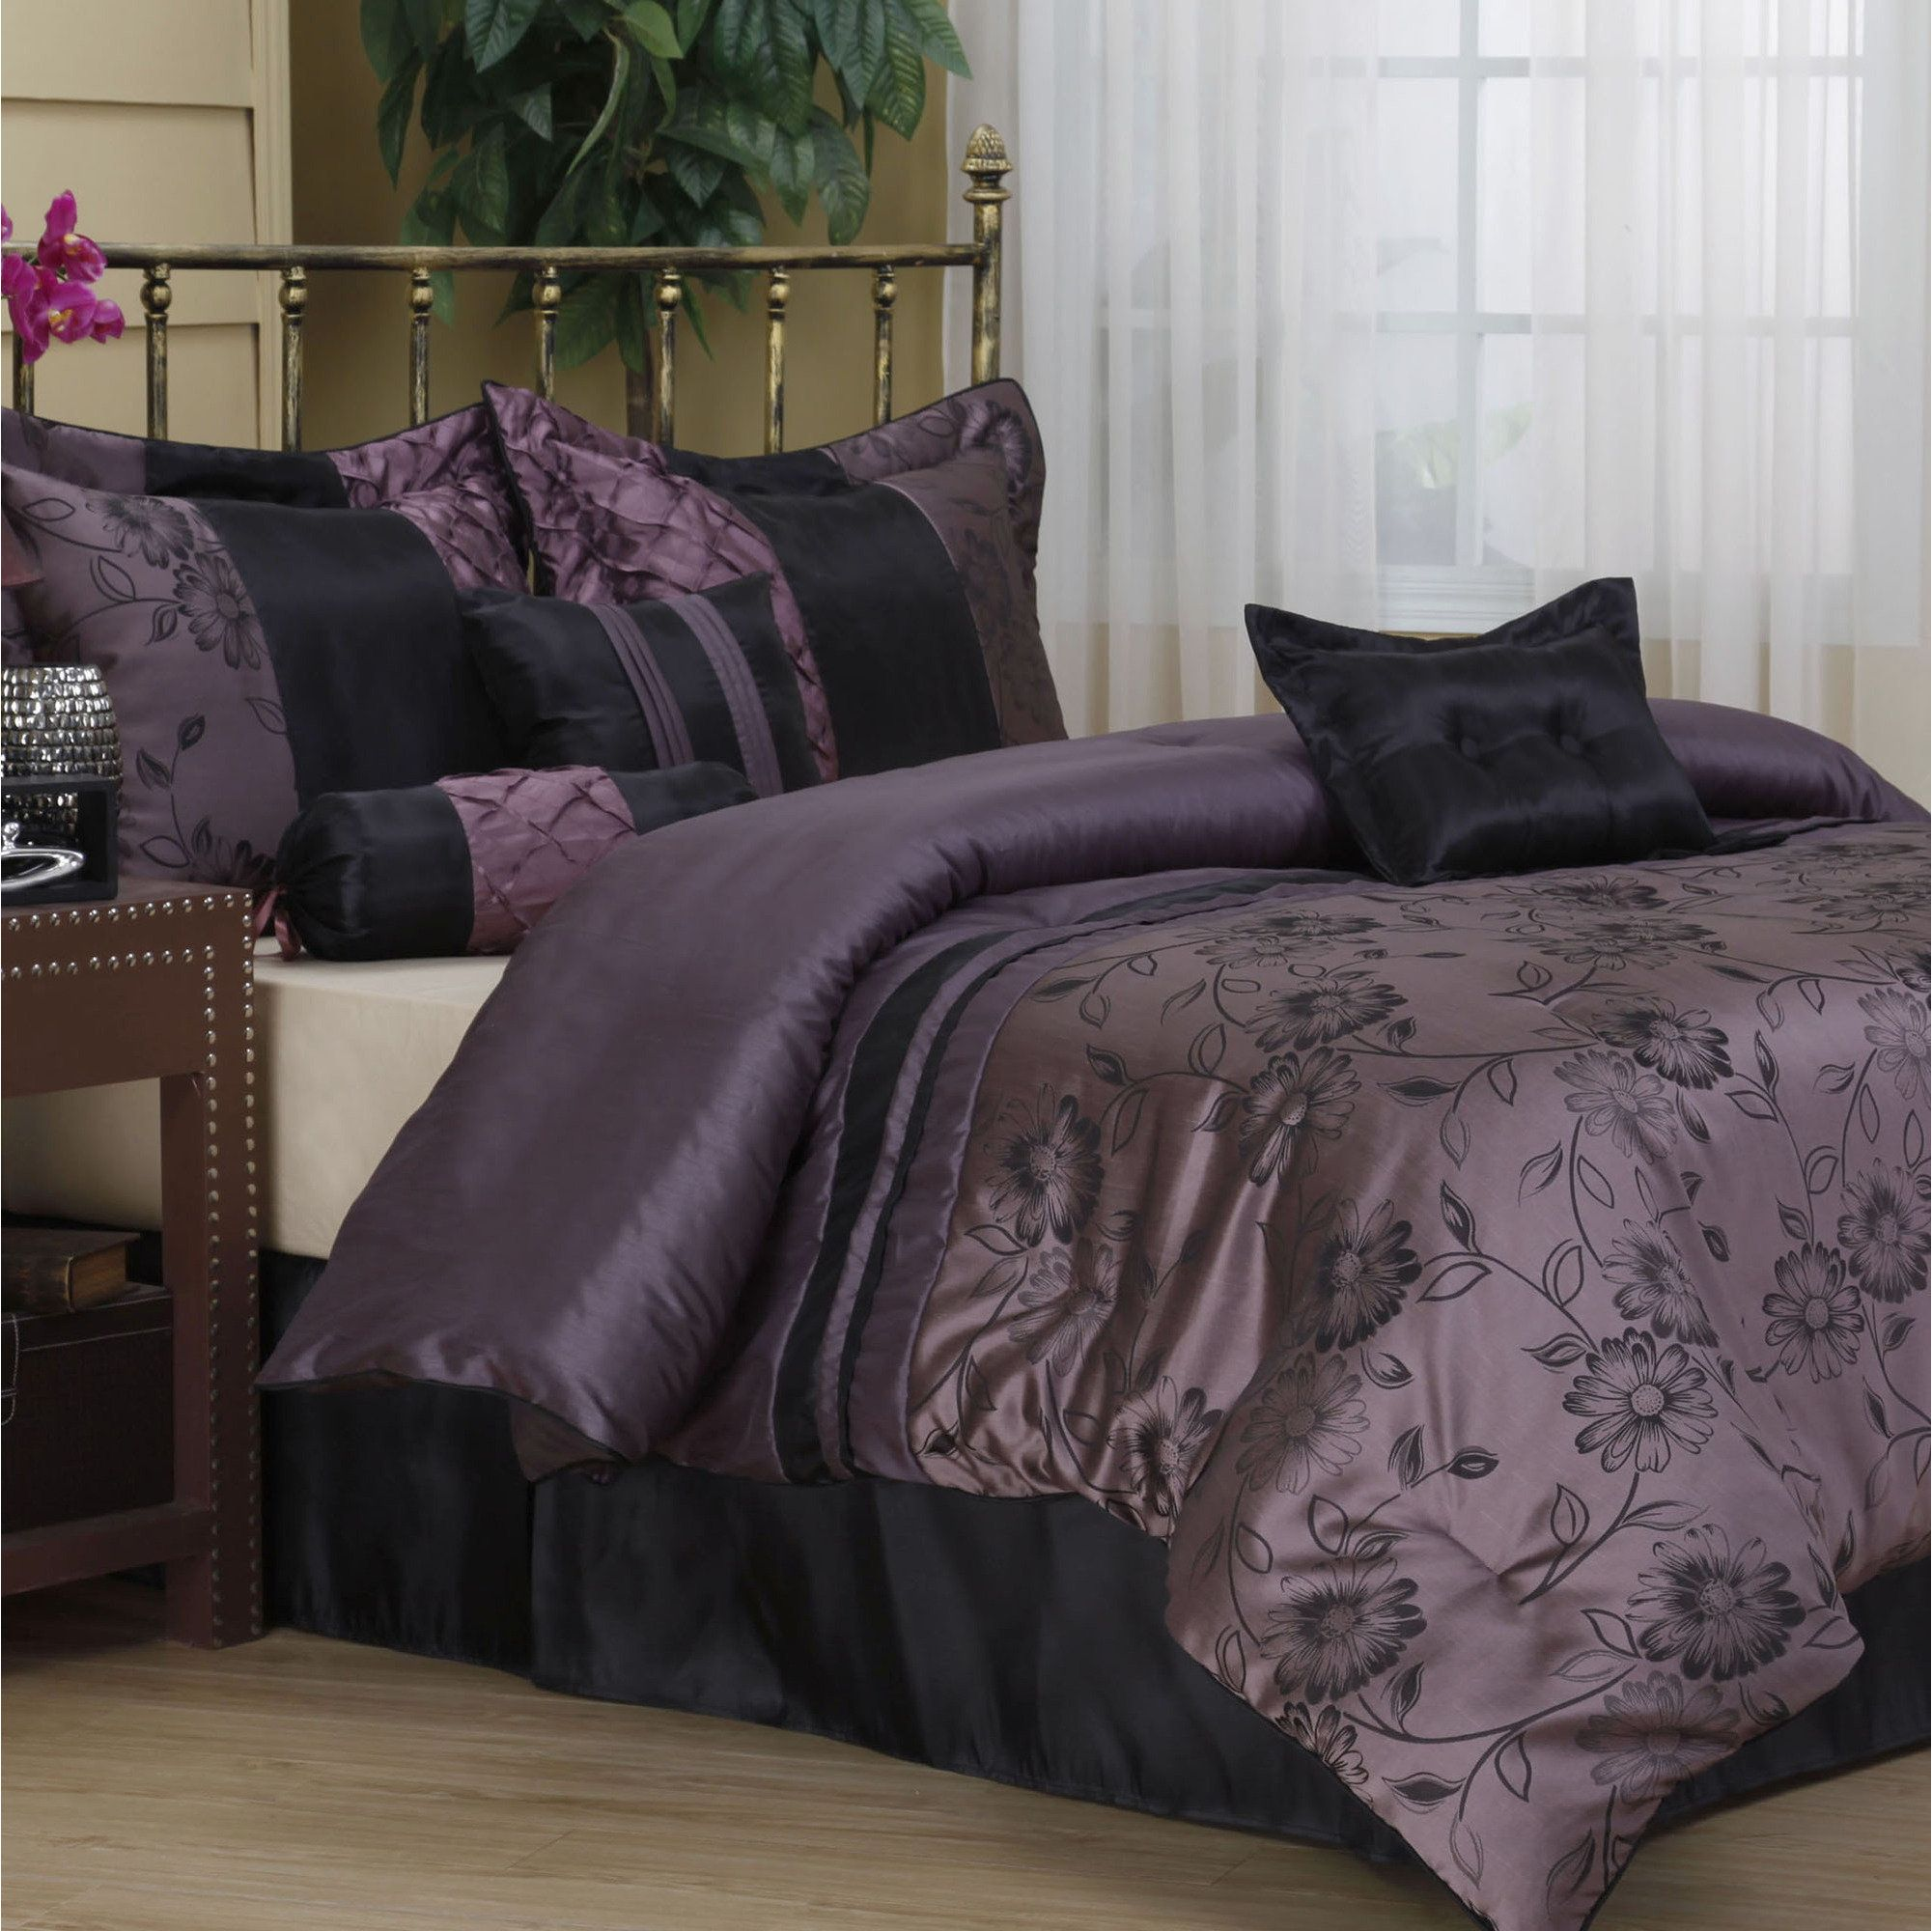 complete comforter black essentials sheet sets madison bedding park claremont and king purple set bed pin